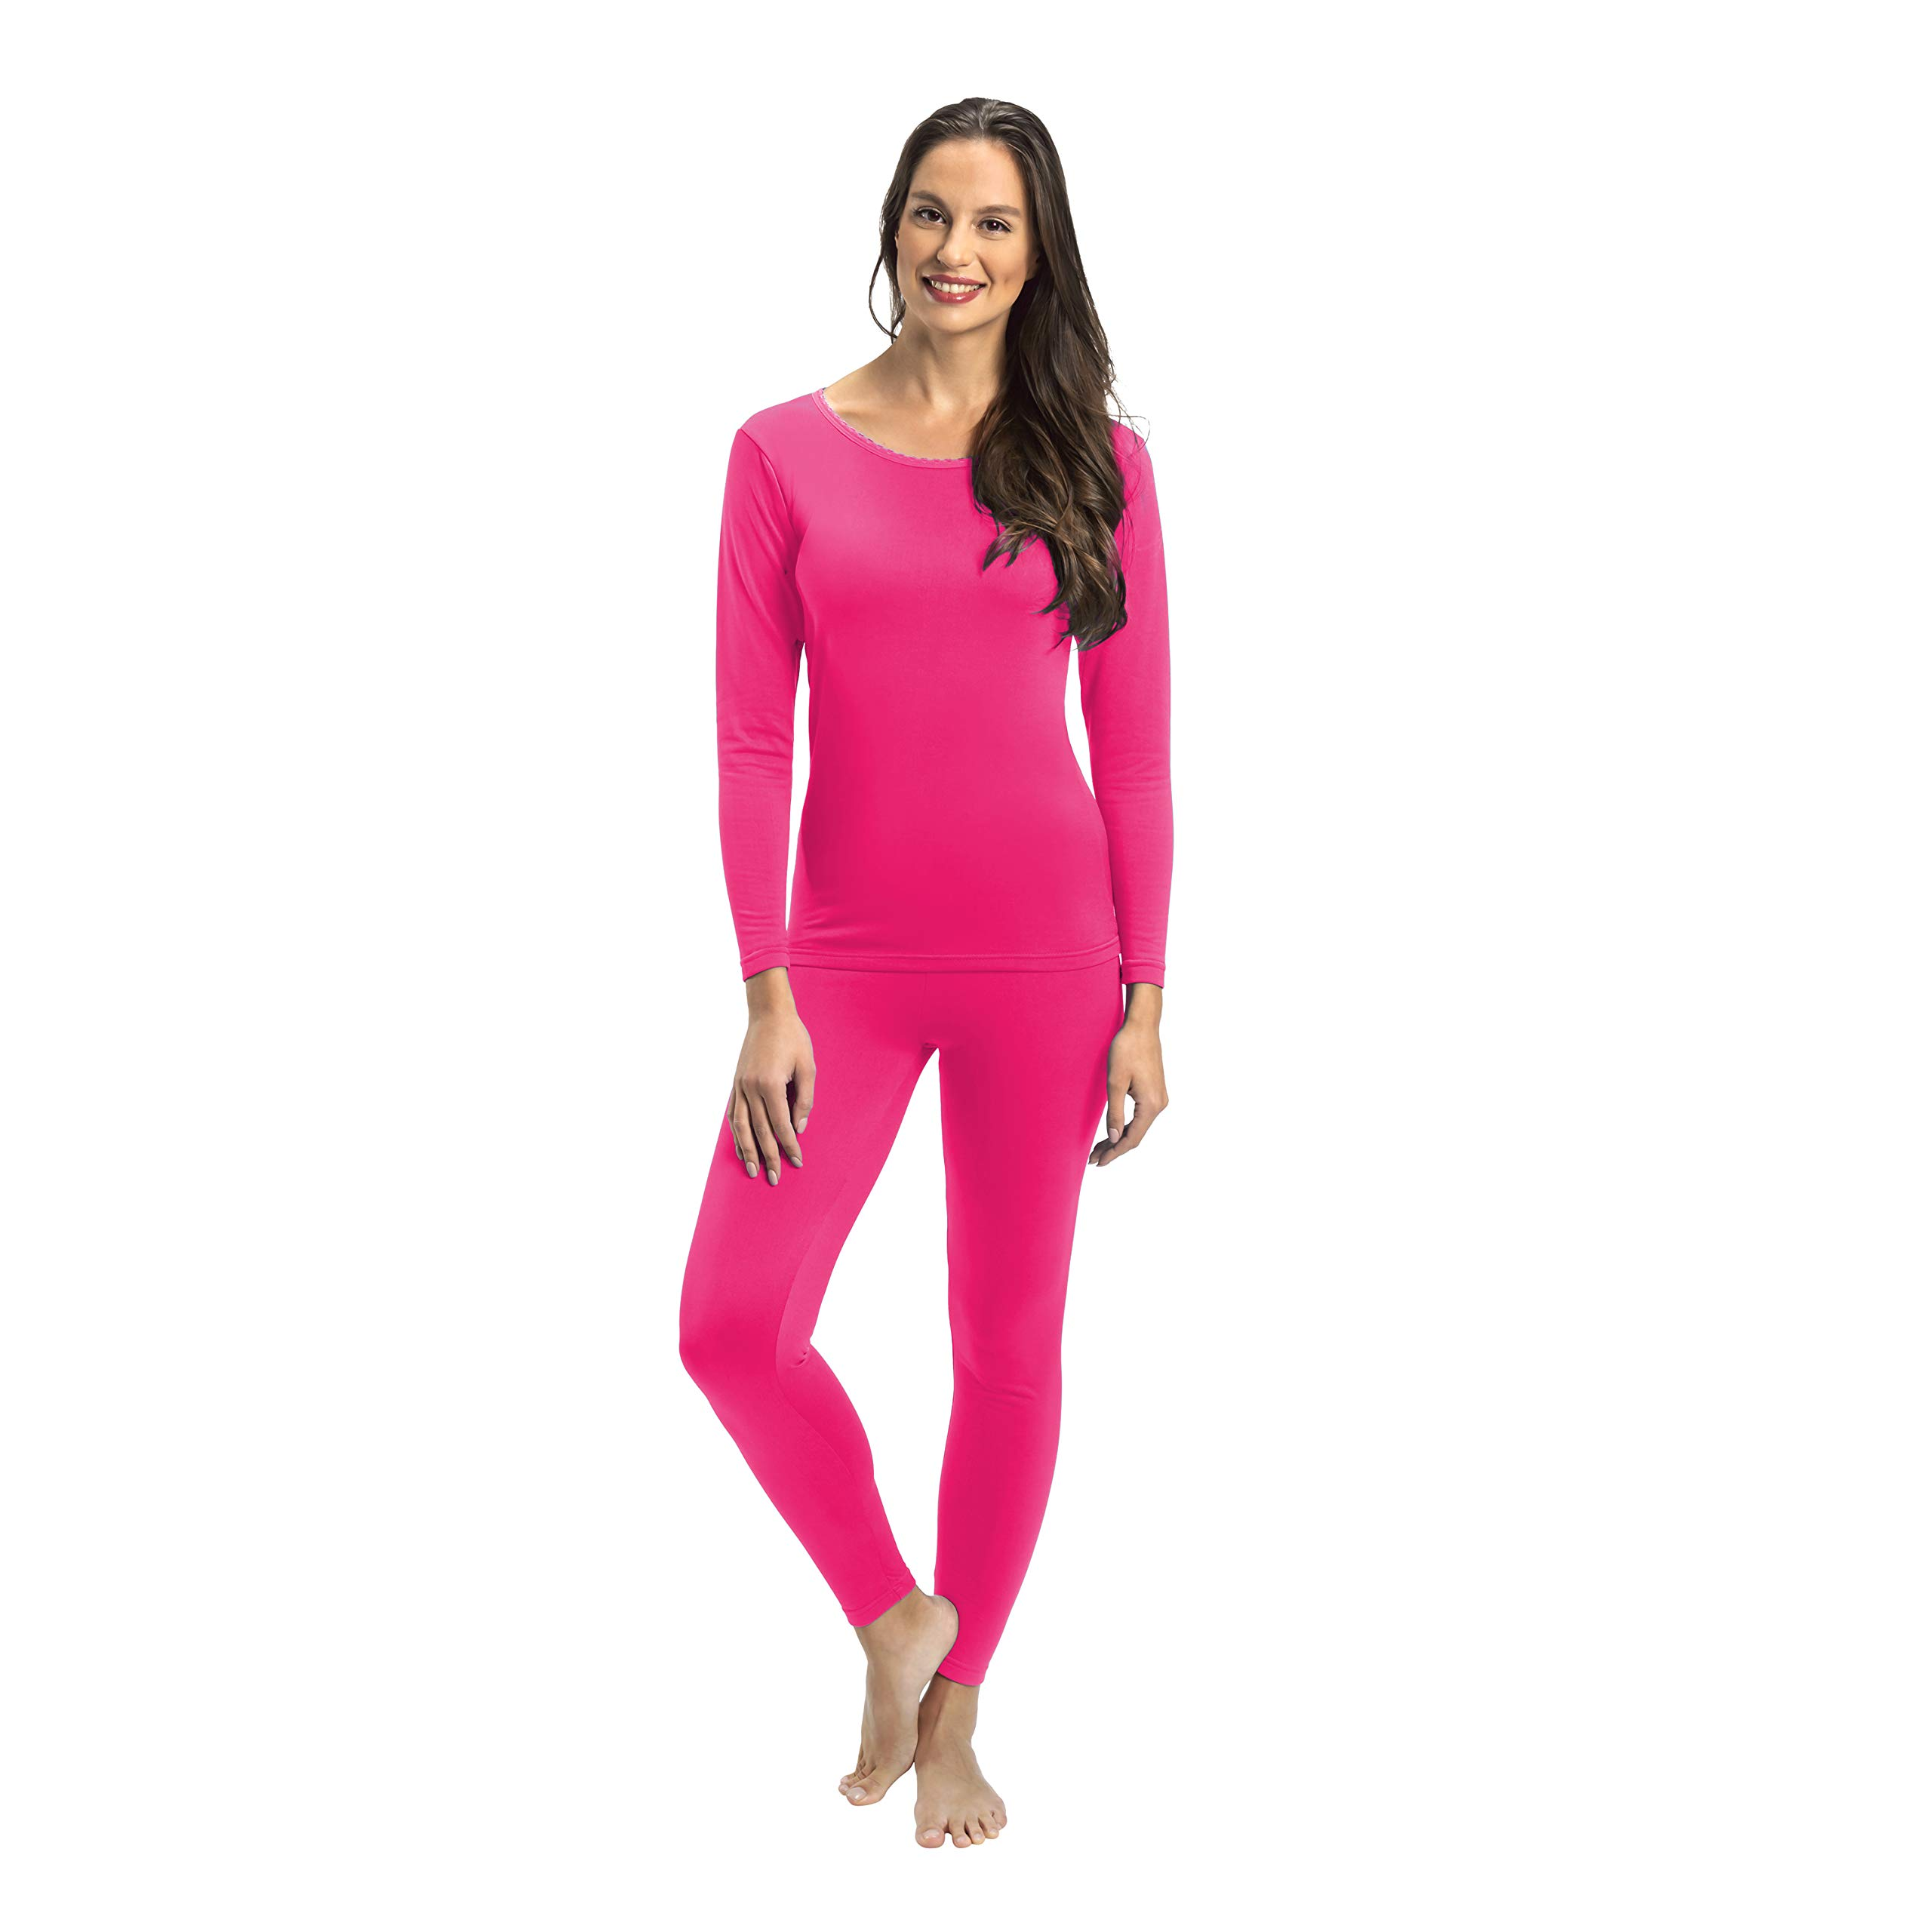 Rocky Womens Thermal 2 Pc Long John Underwear Set Top and Bottom Smooth Knit (2Xlarge, Hot Pink) by Rocky